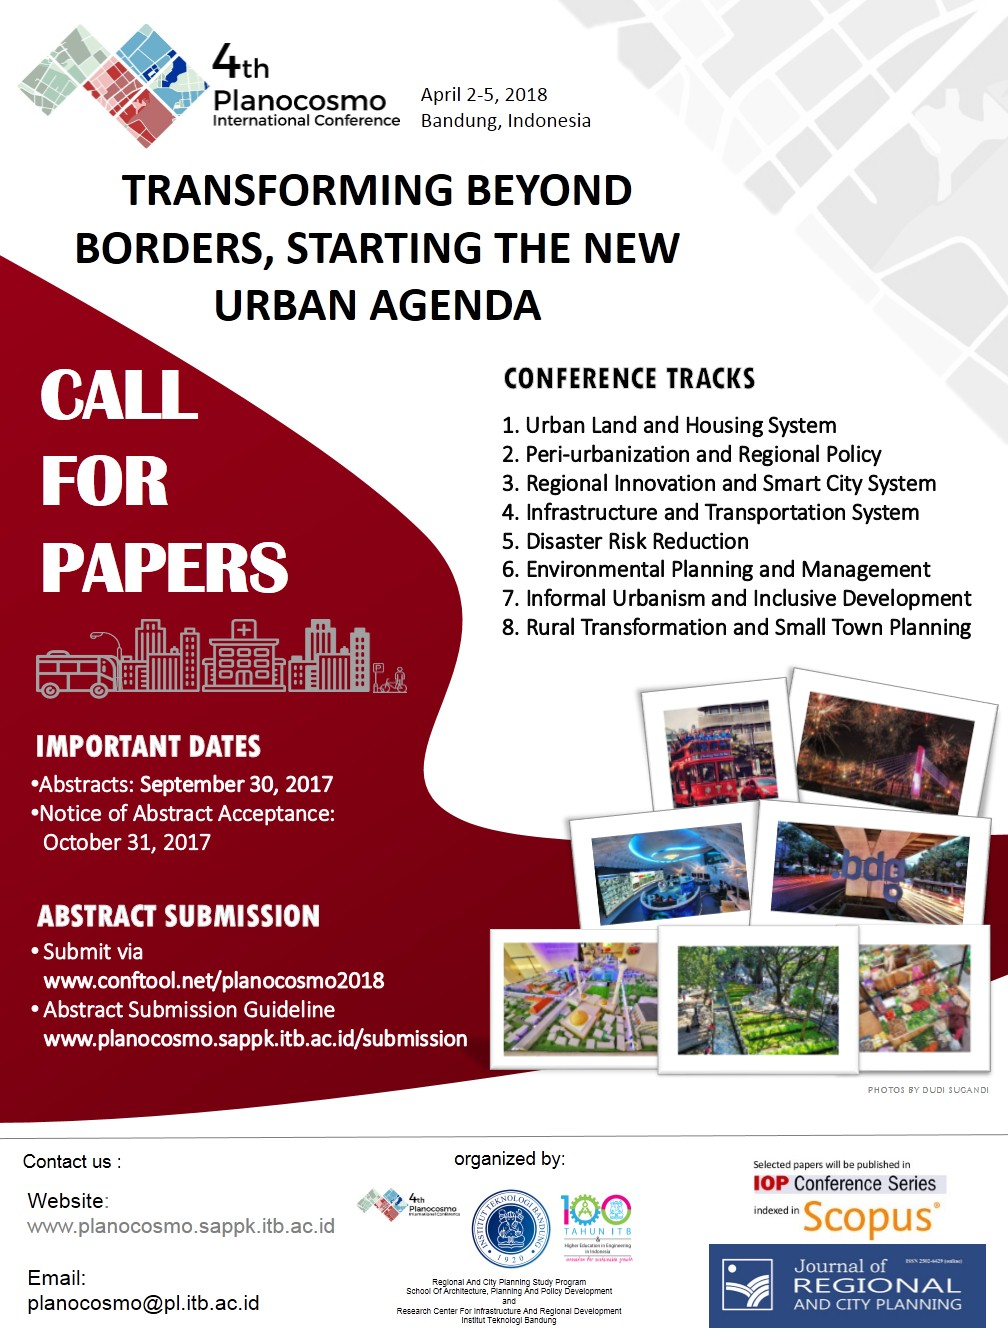 Call for Papers PC4